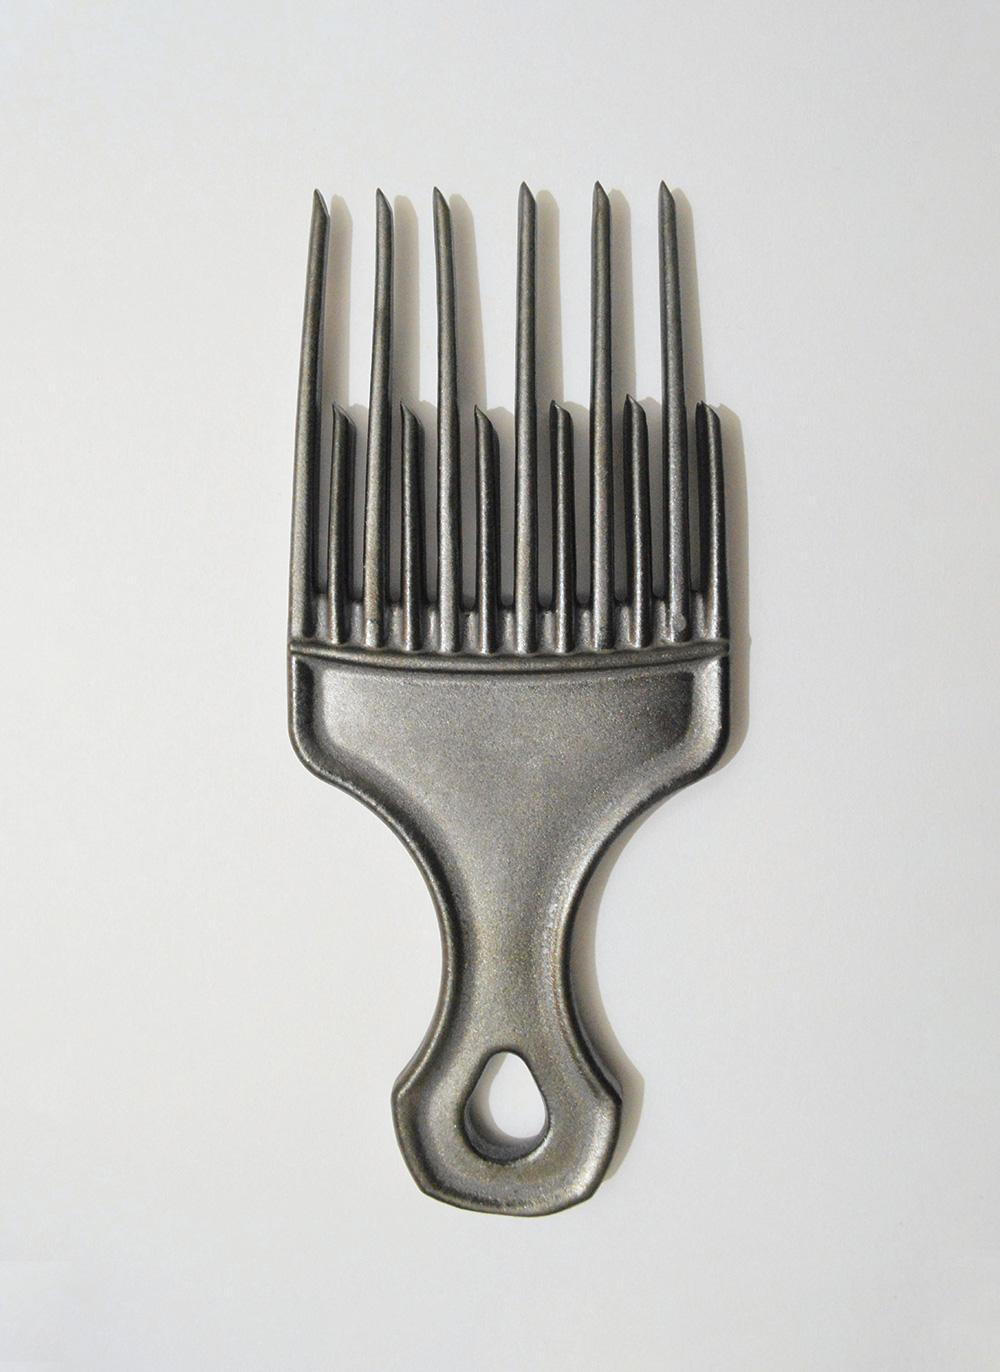 altered hair comb cast in metal